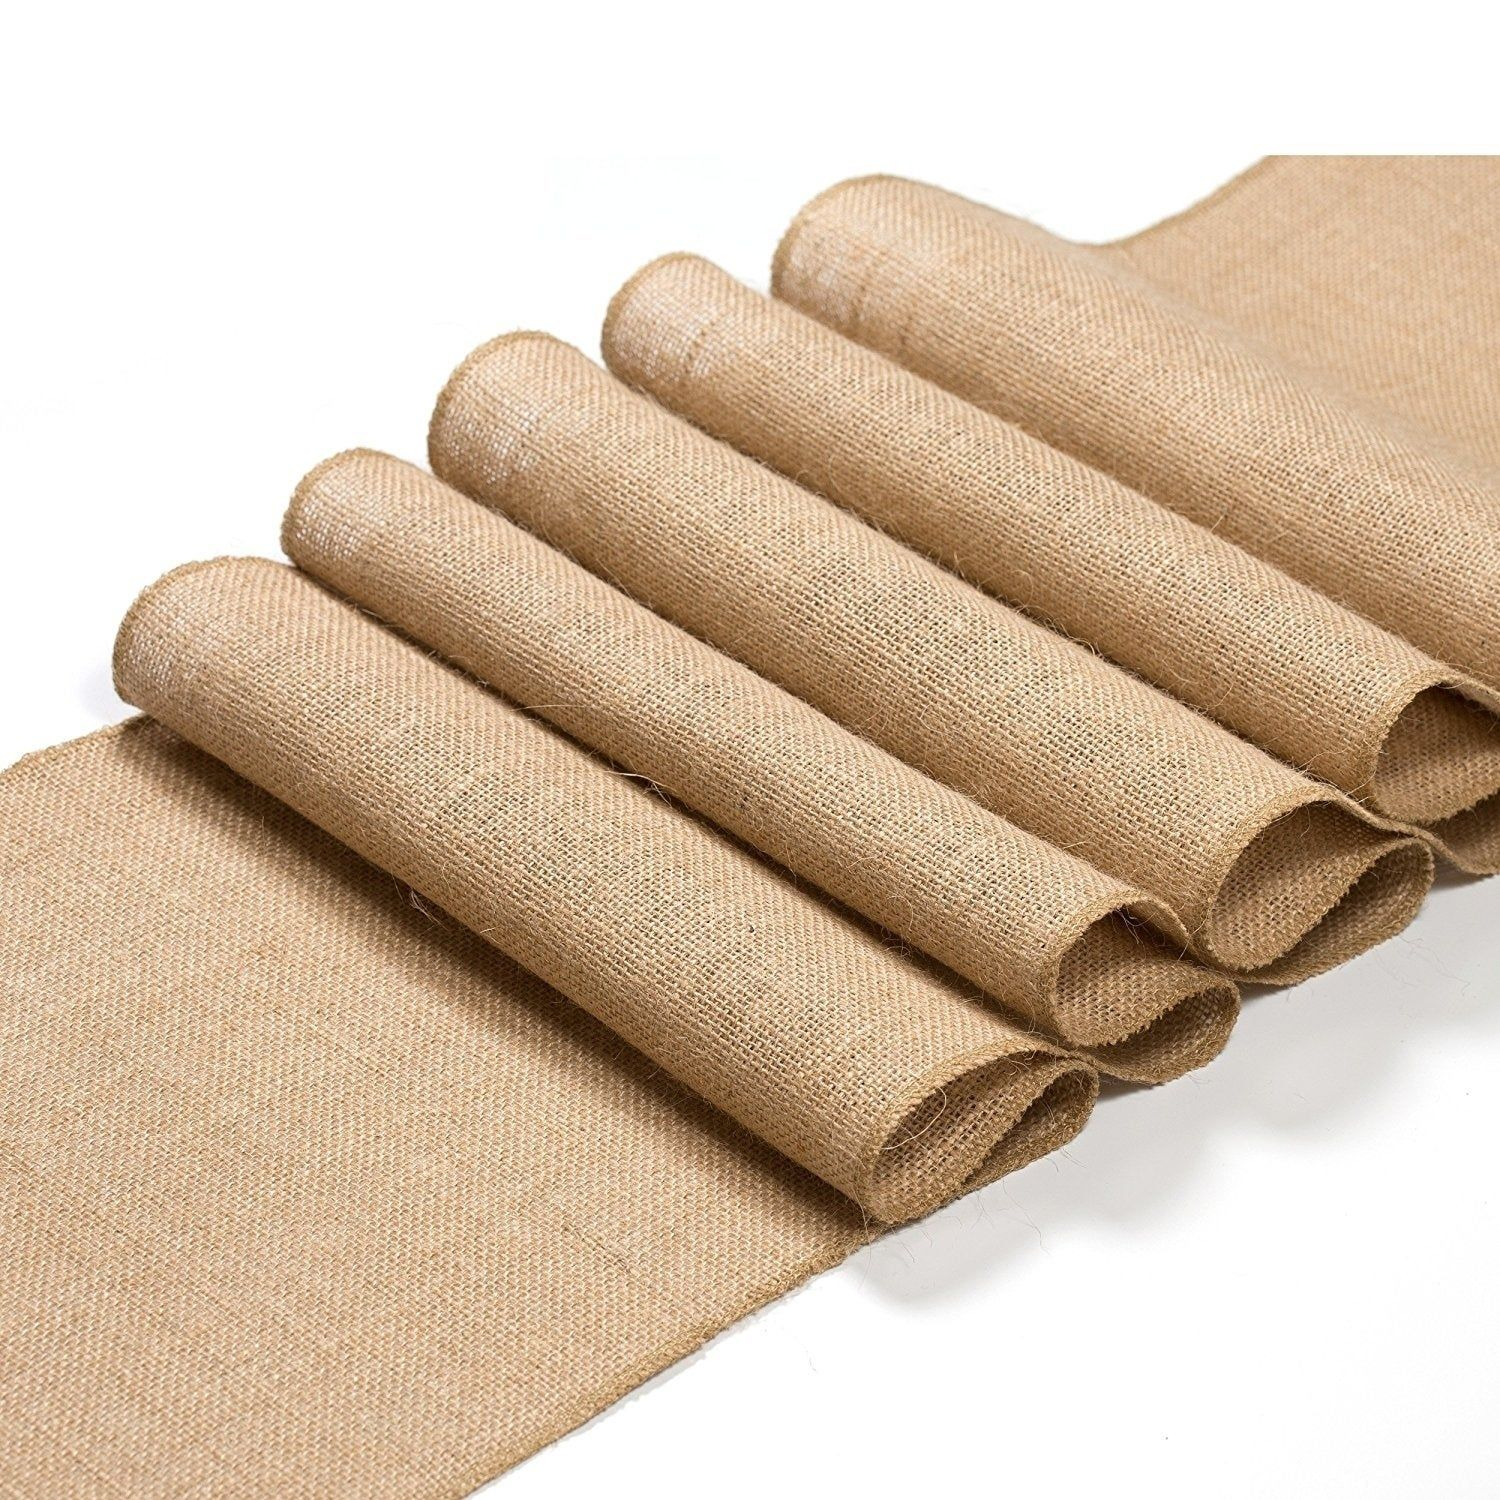 Burlap table runner 12x108 inches long roll true 100